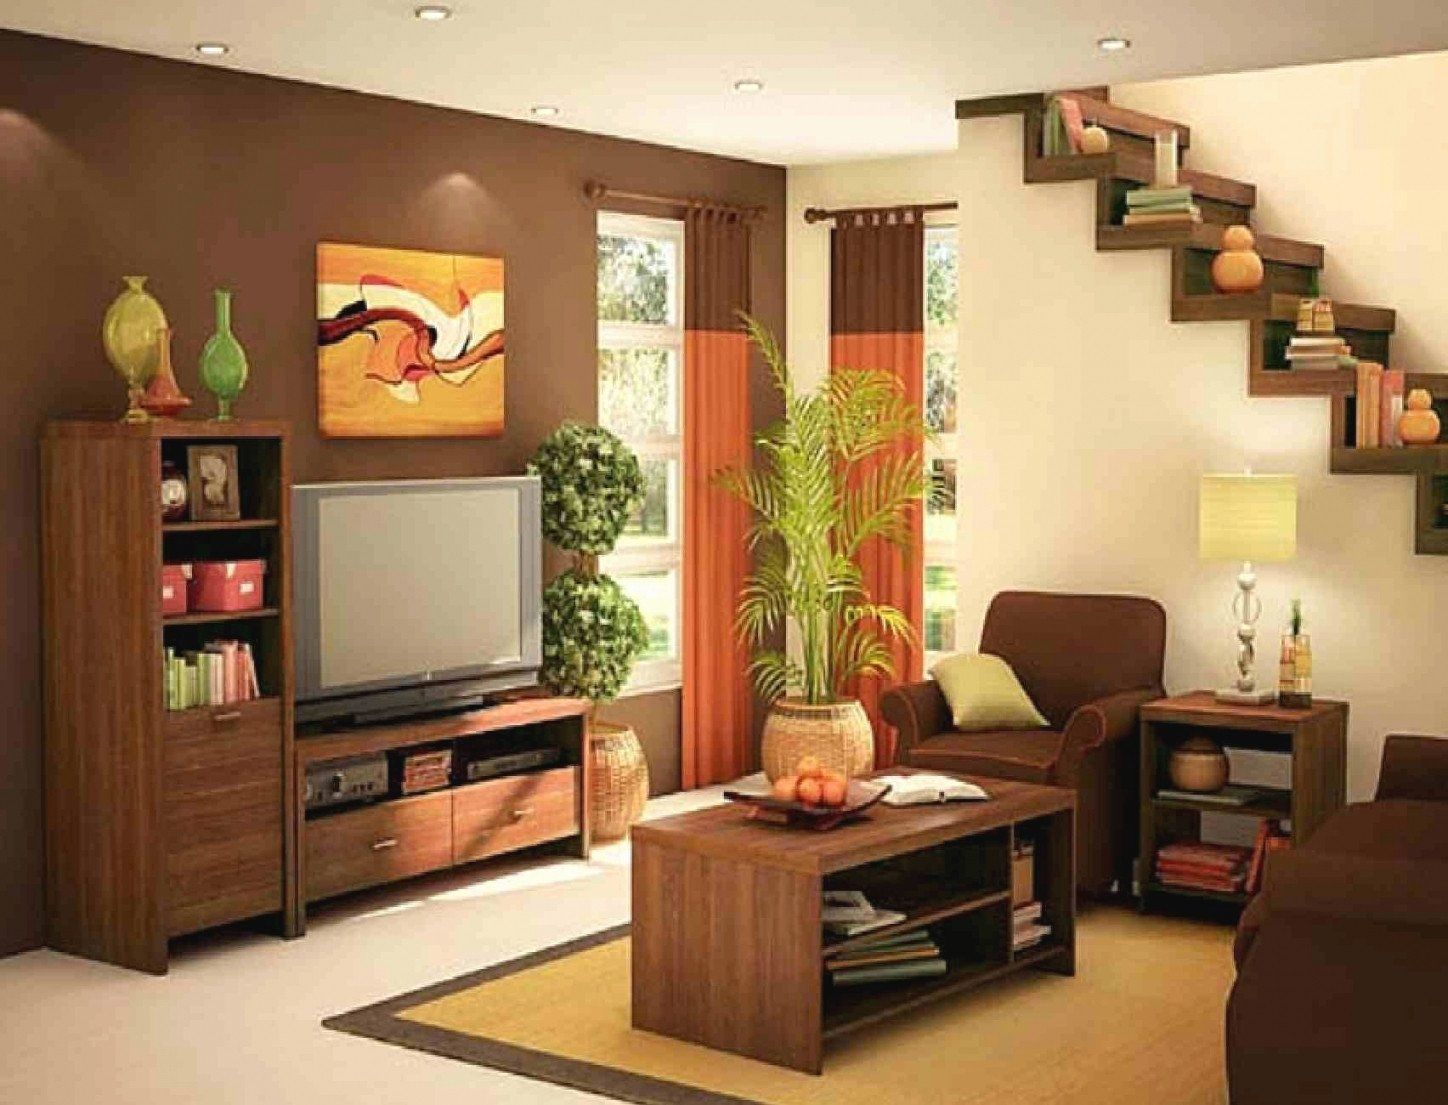 Living Room Decor In Indian Style Outstanding N Interior Design Ideas Living Room S In 2020 Small House Interior Small House Interior Design Simple Living Room Designs